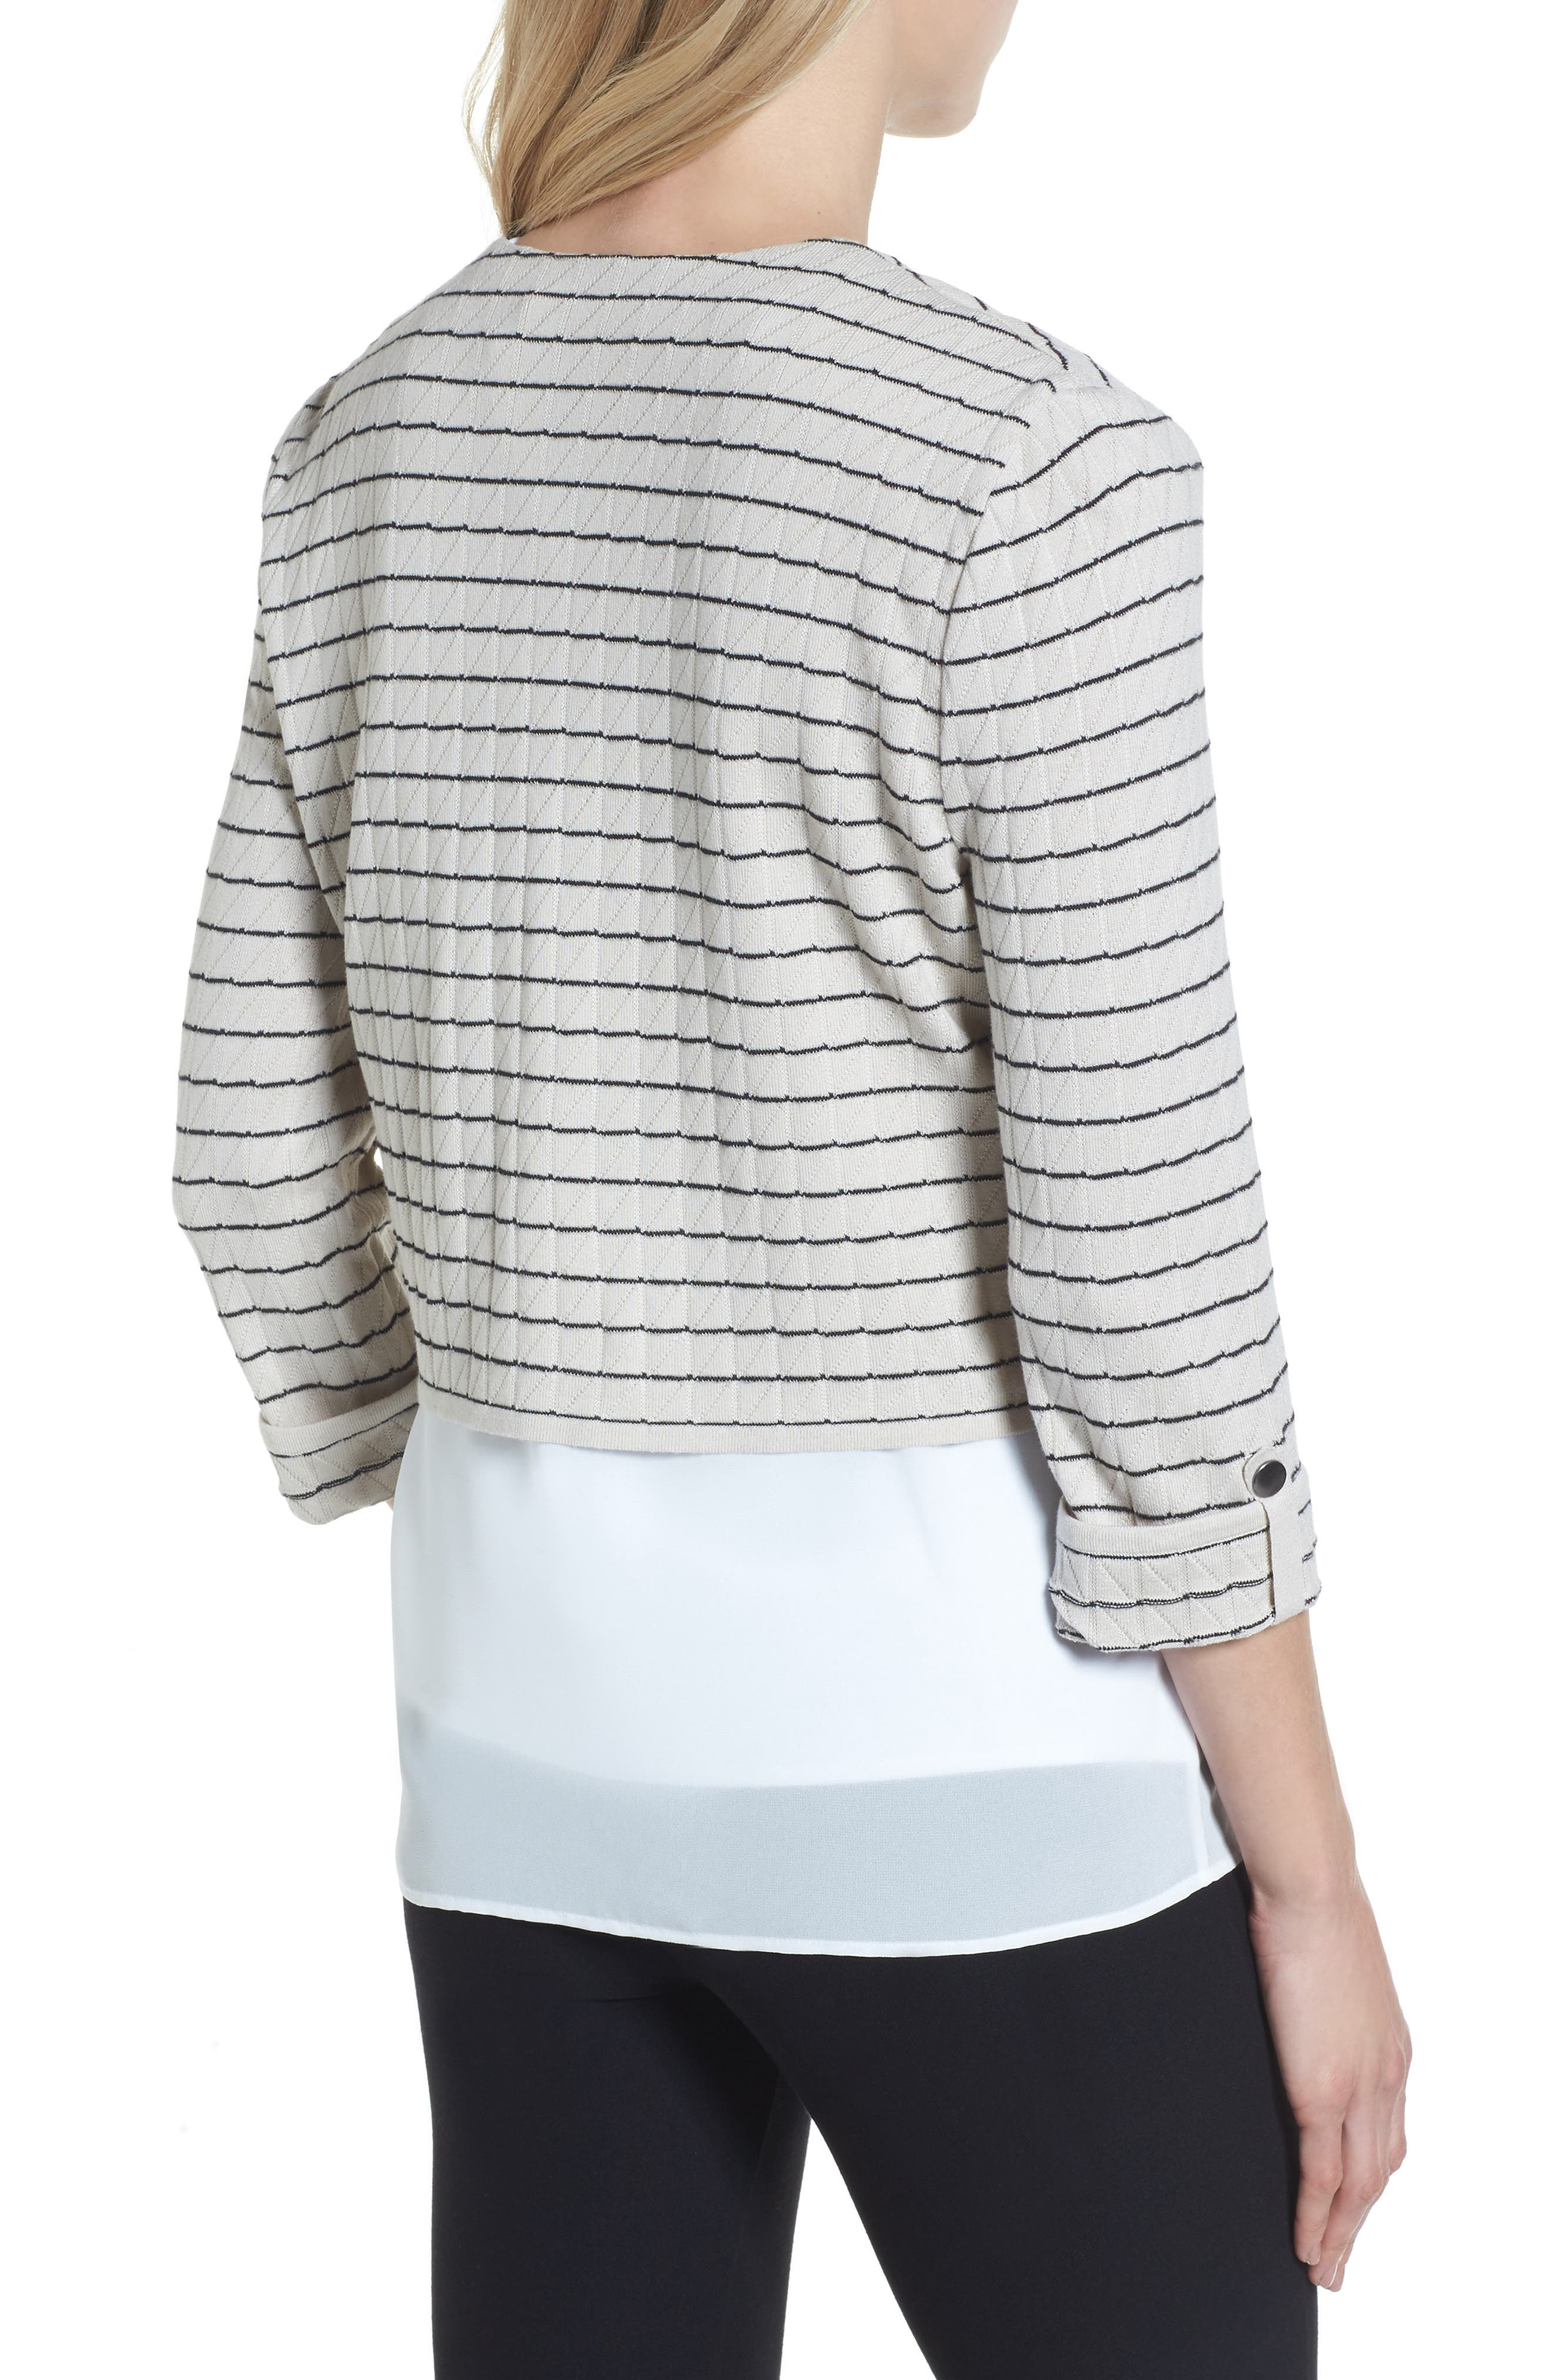 Layered Look Knit Jacket,                             Alternate thumbnail 2, color,                             Almond Beige/ Black/ White